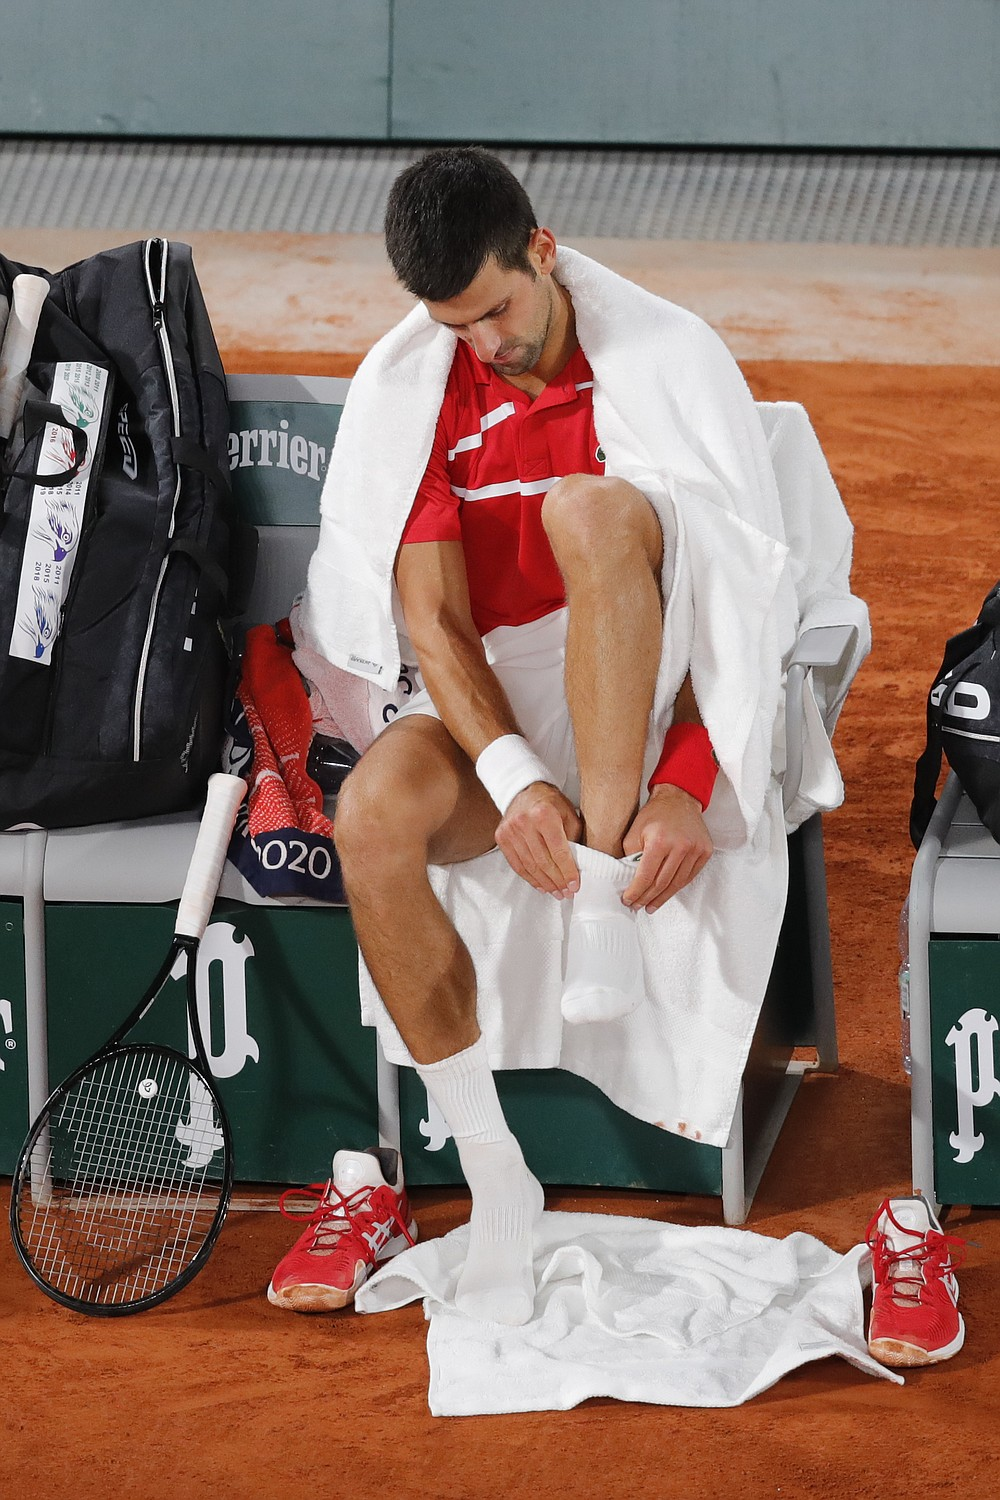 Serbia's Novak Djokovic puts on a sock in the semifinal match of the French Open tennis tournament against Greece's Stefanos Tsitsipas at the Roland Garros stadium in Paris, France, Friday, Oct. 9, 2020. (AP Photo/Christophe Ena)